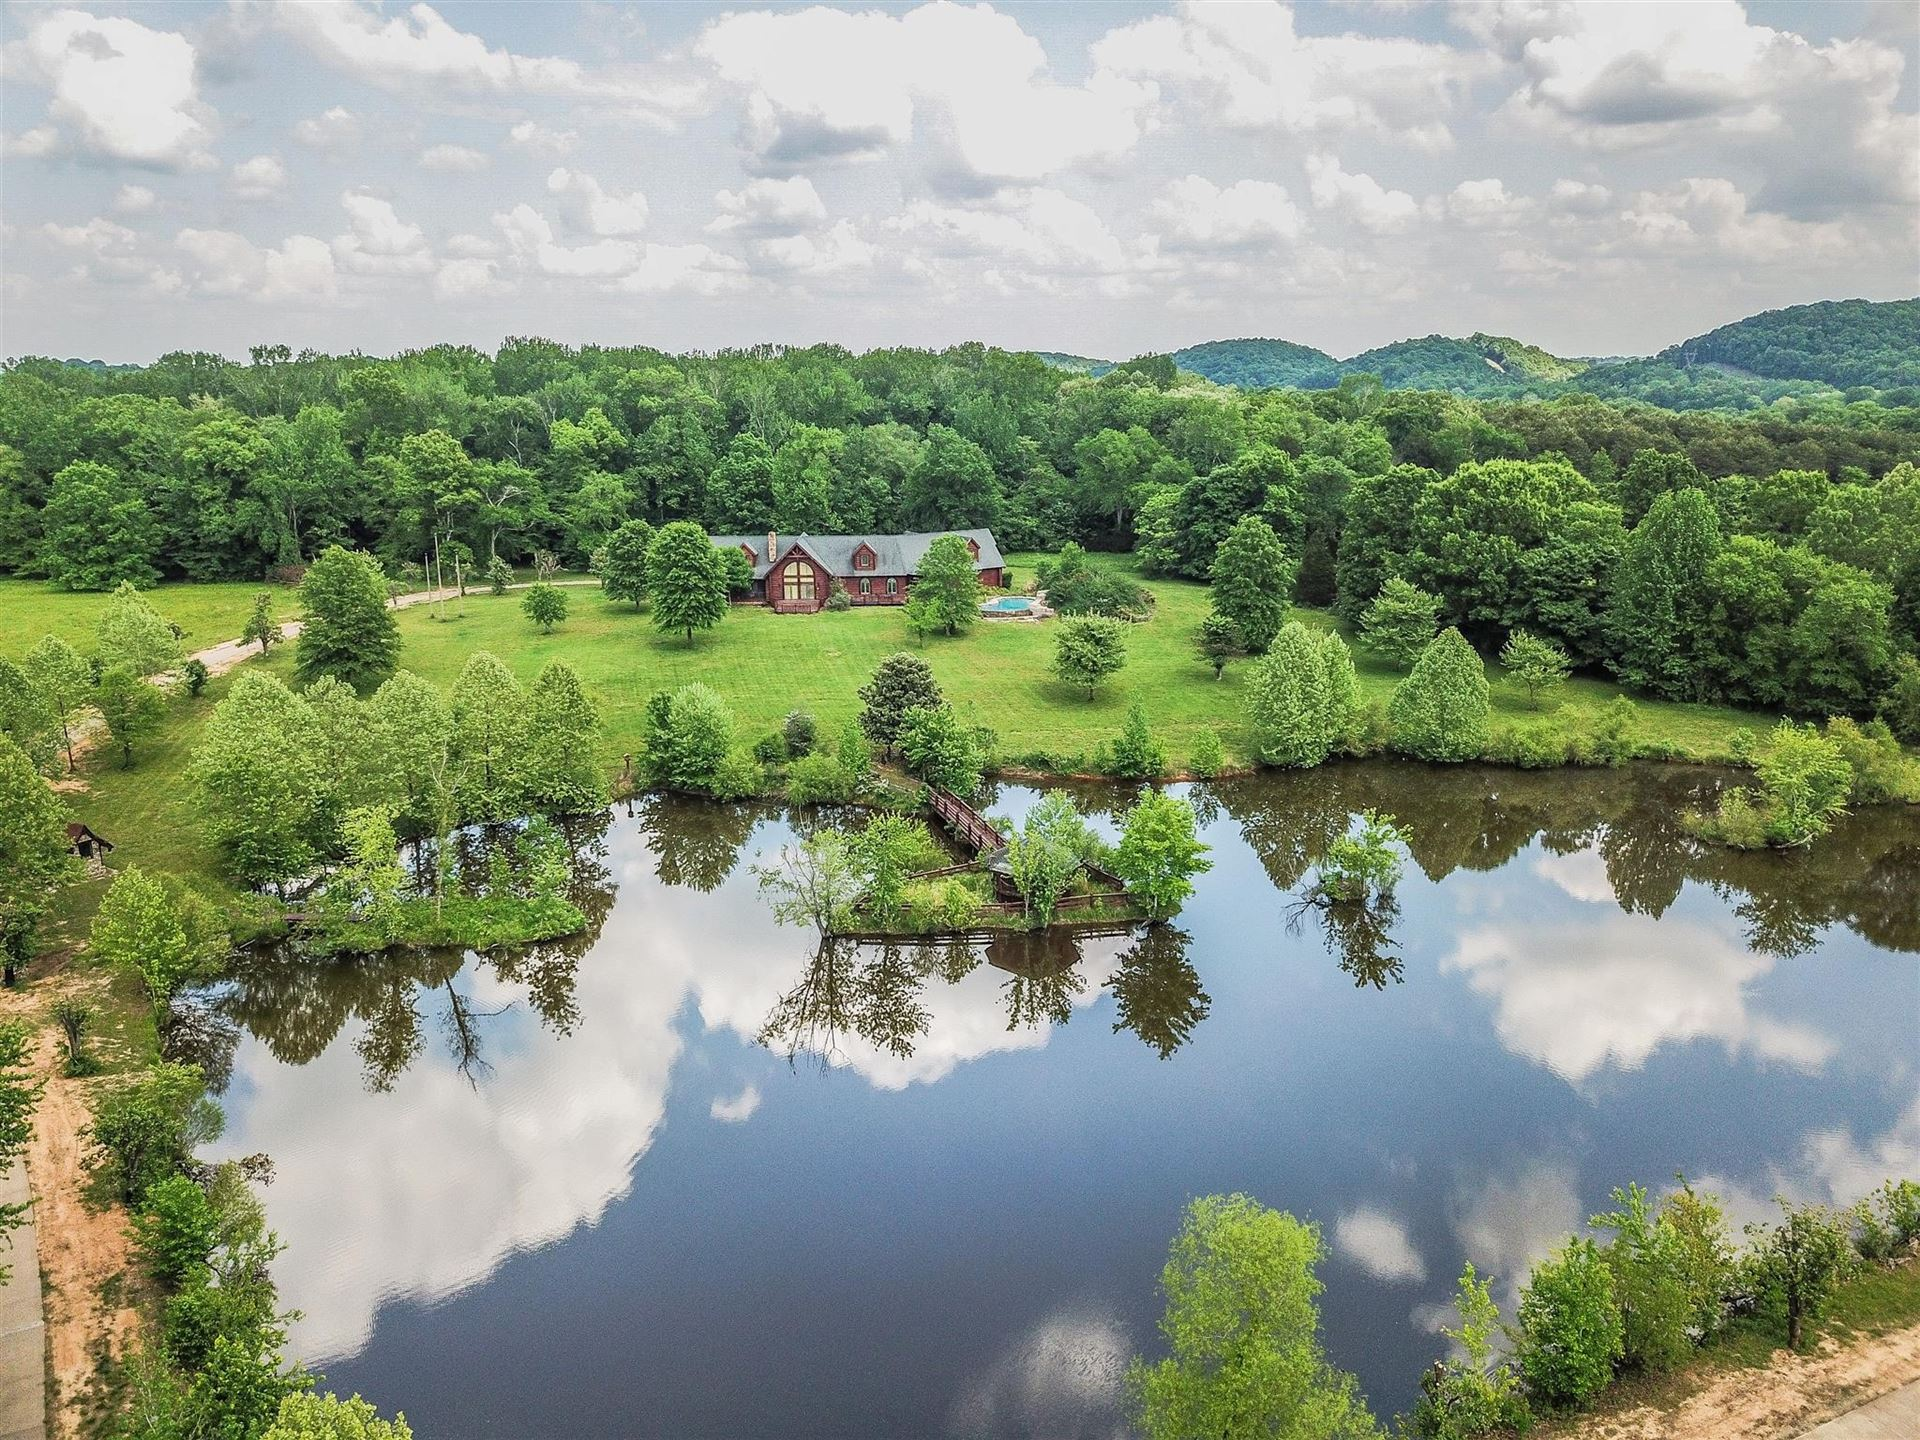 Photo for 1398 Narrows Of The Harpeth Rd, Kingston Springs, TN 37082 (MLS # 2161551)